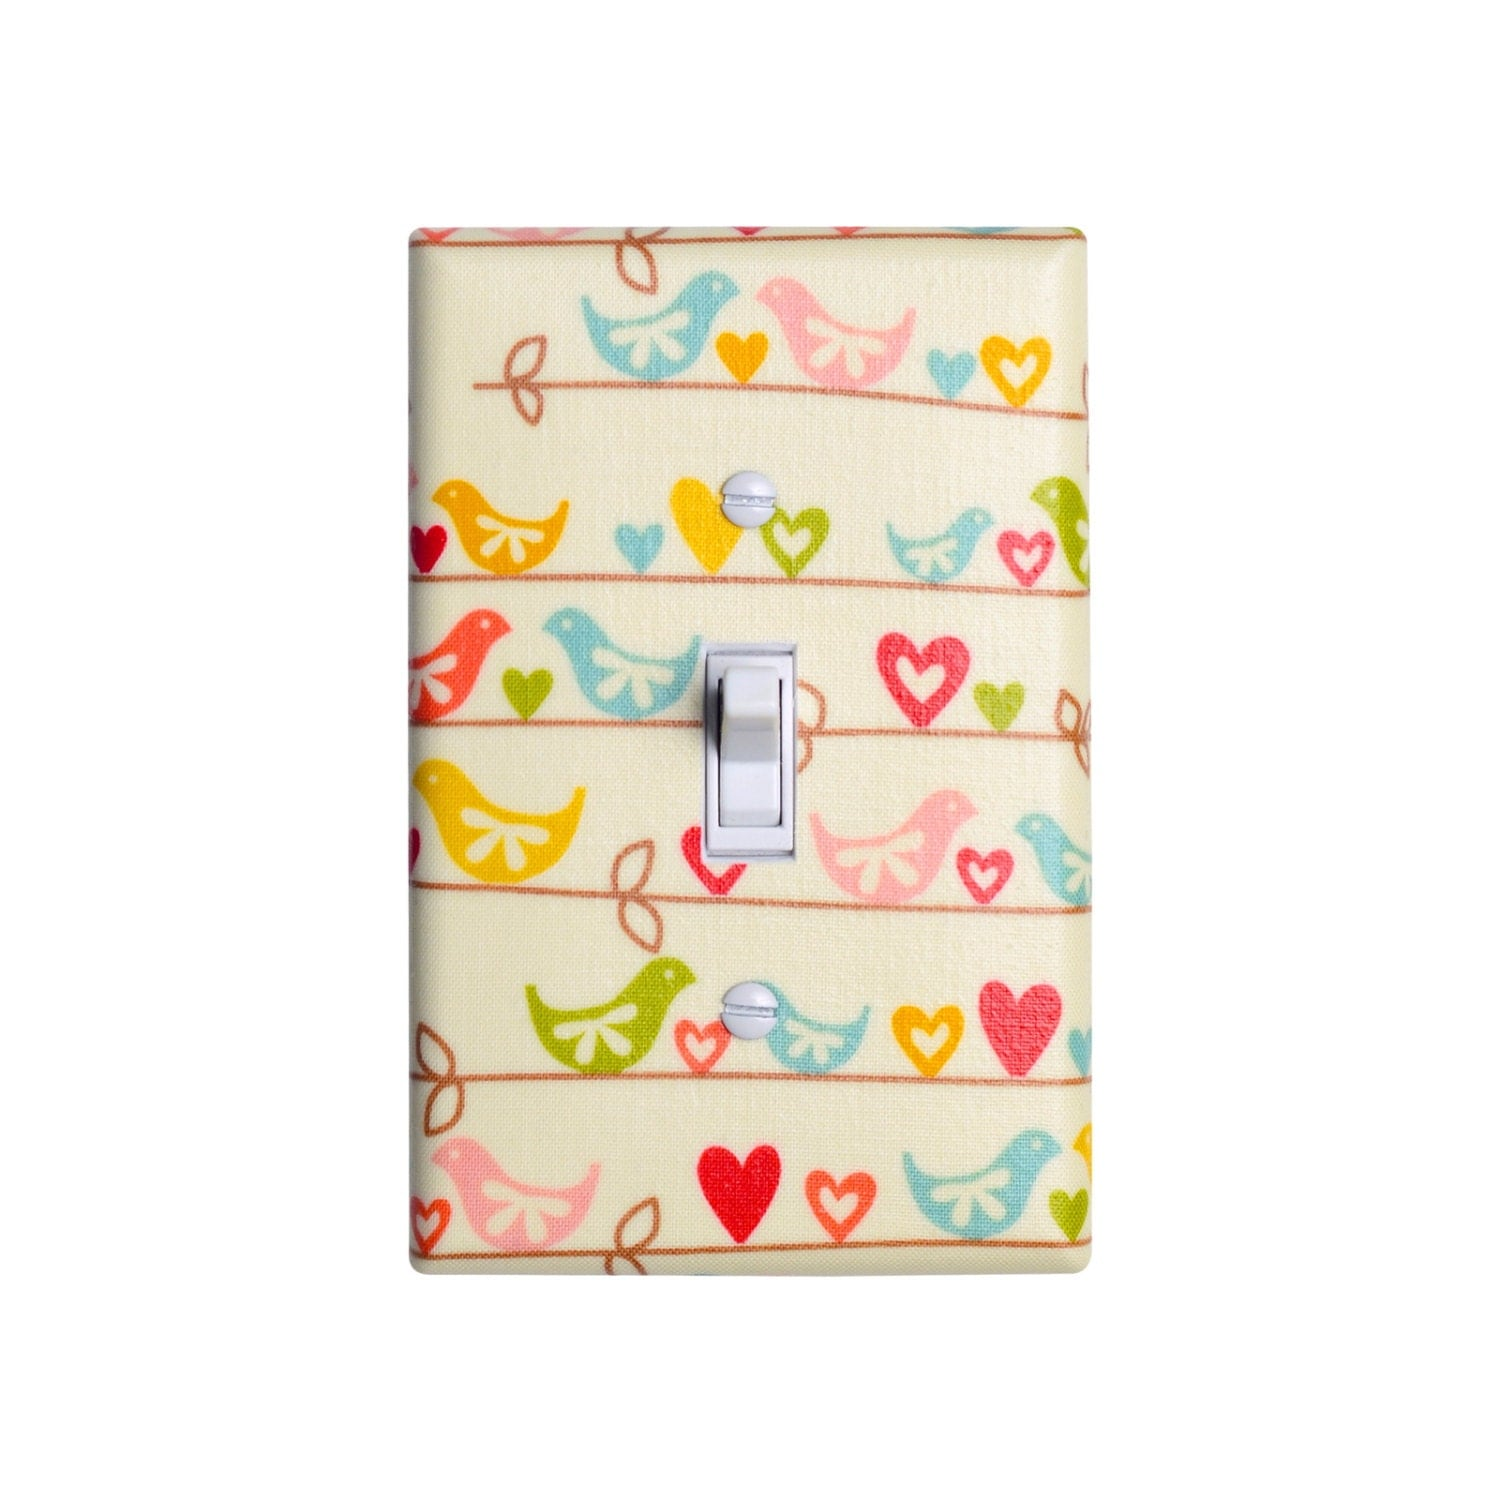 bird light switch plate cover girls kids room baby nursery